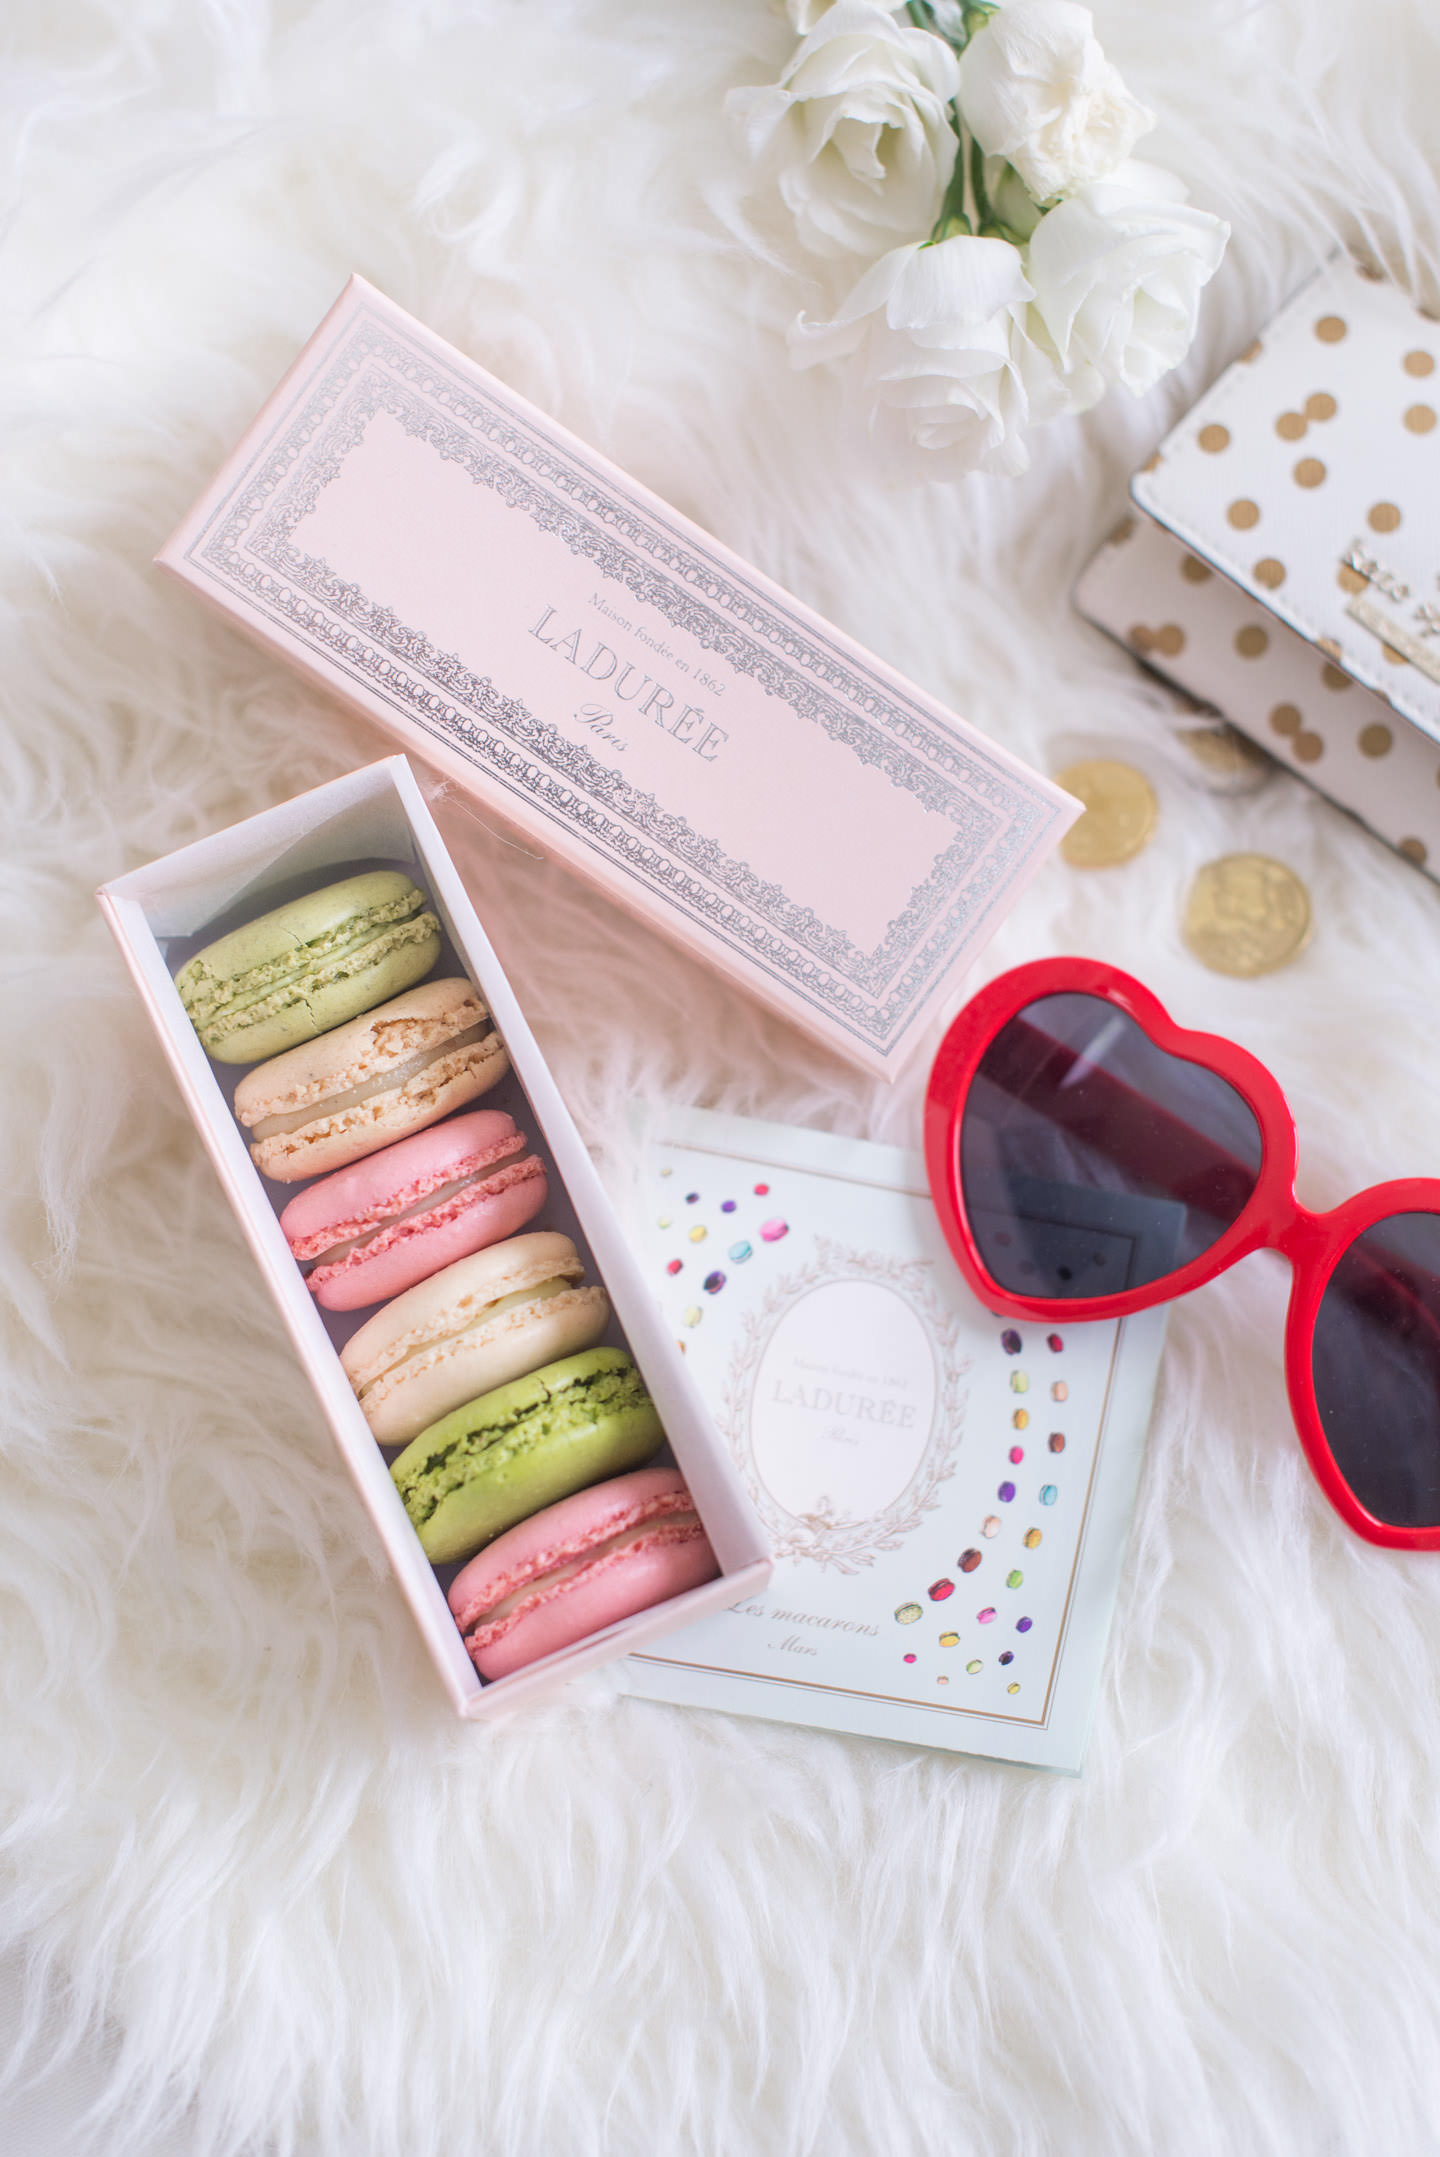 Blog-Mode-And-The-City-Lifestyle-paris-en-une-journee-laduree-4